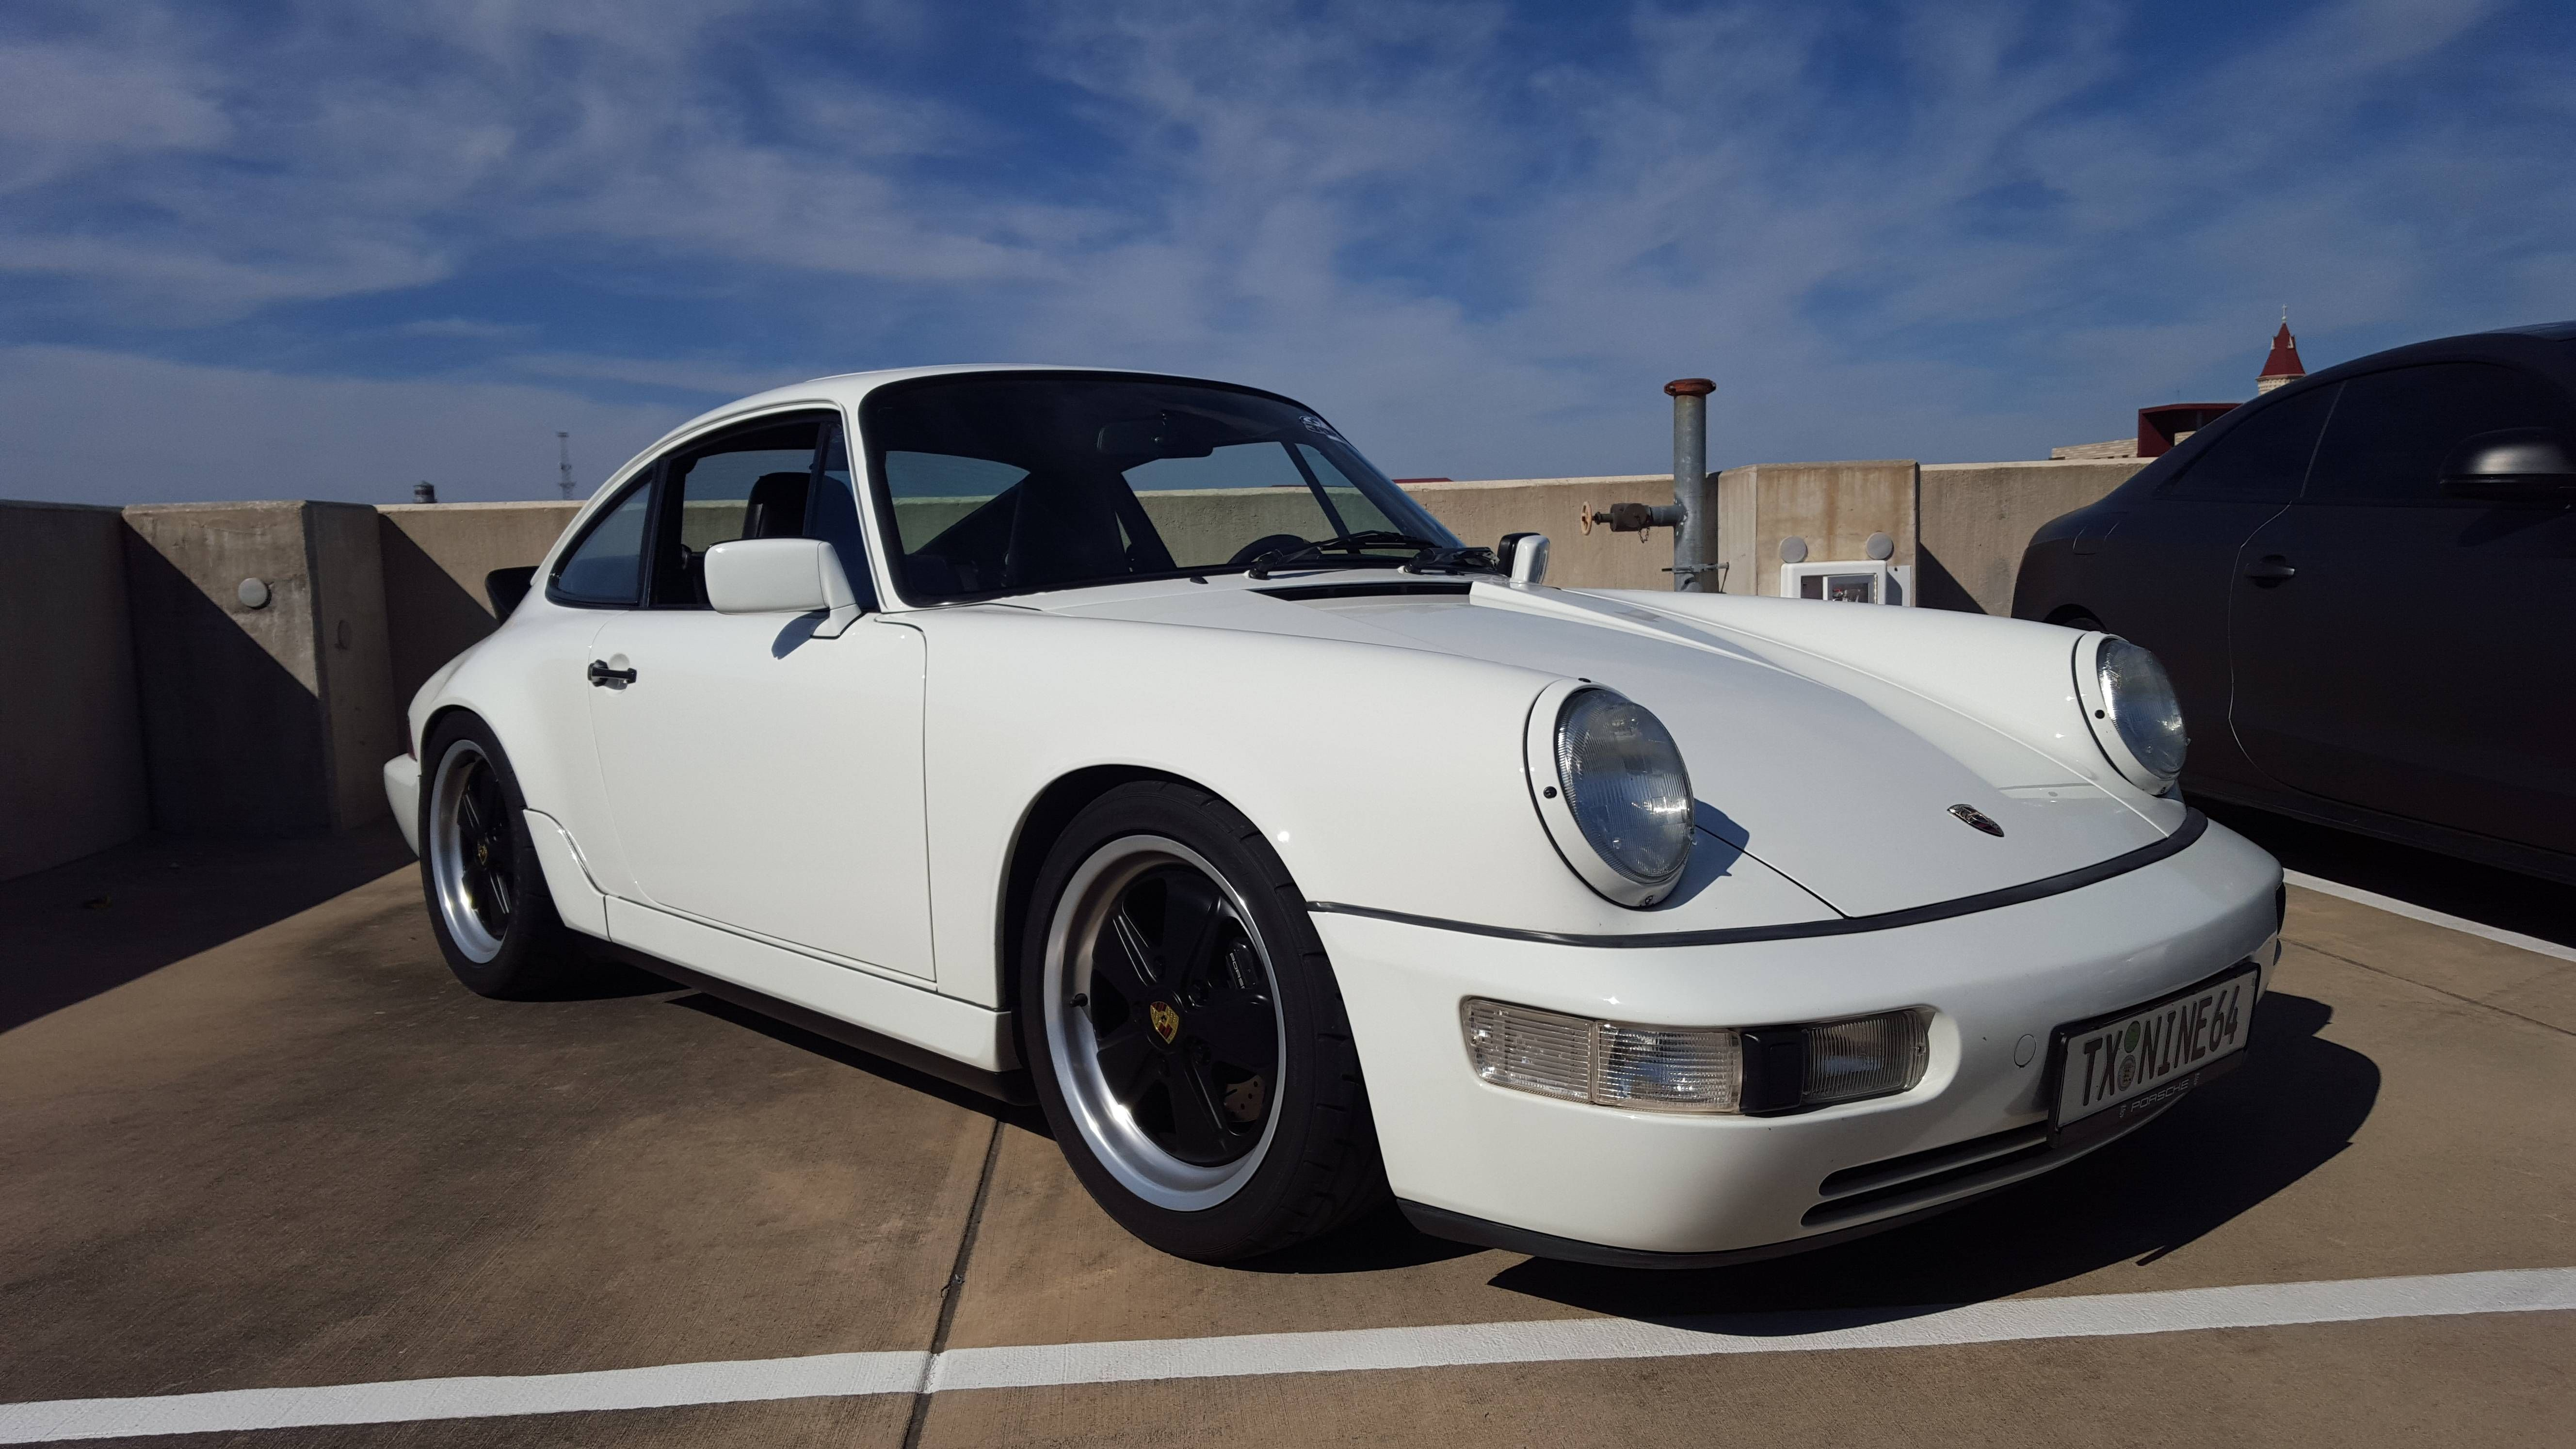 Superior 1990 Porsche 964 Austin, Texas [1440x2560] HD Wallpaper From Gallsource.com Awesome Design